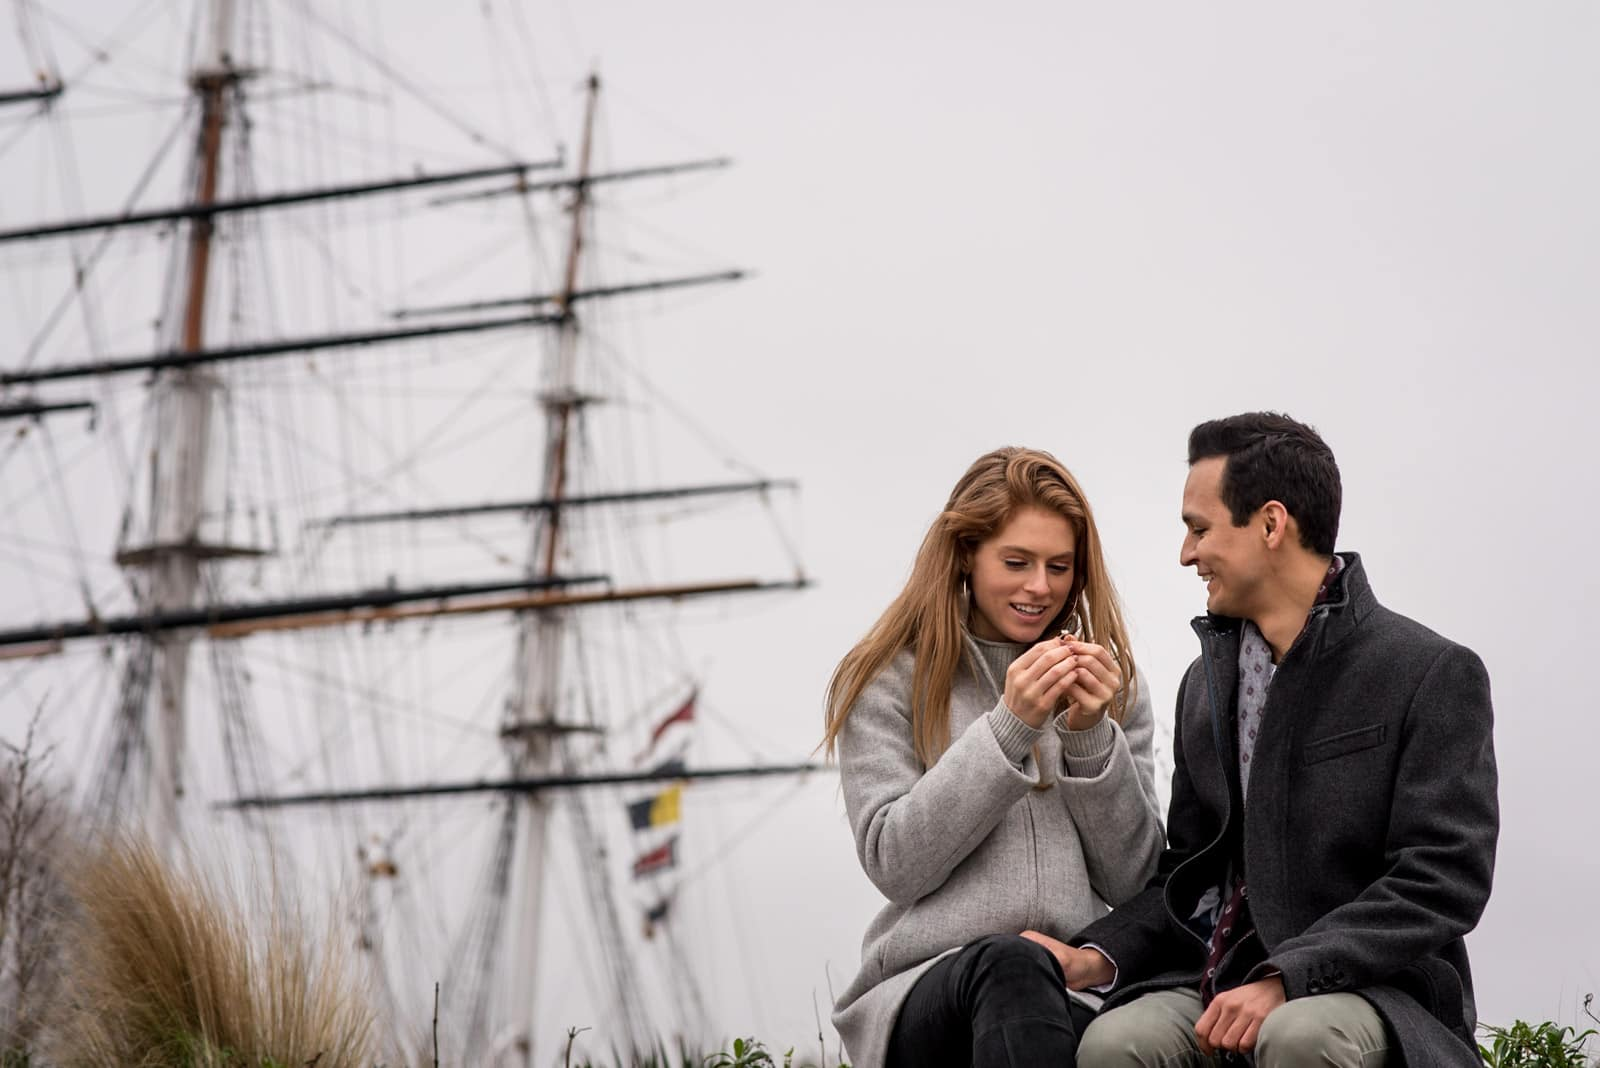 Photo of fiance admiring her ring after proposal next to Cutty Sark in Greenwich, London